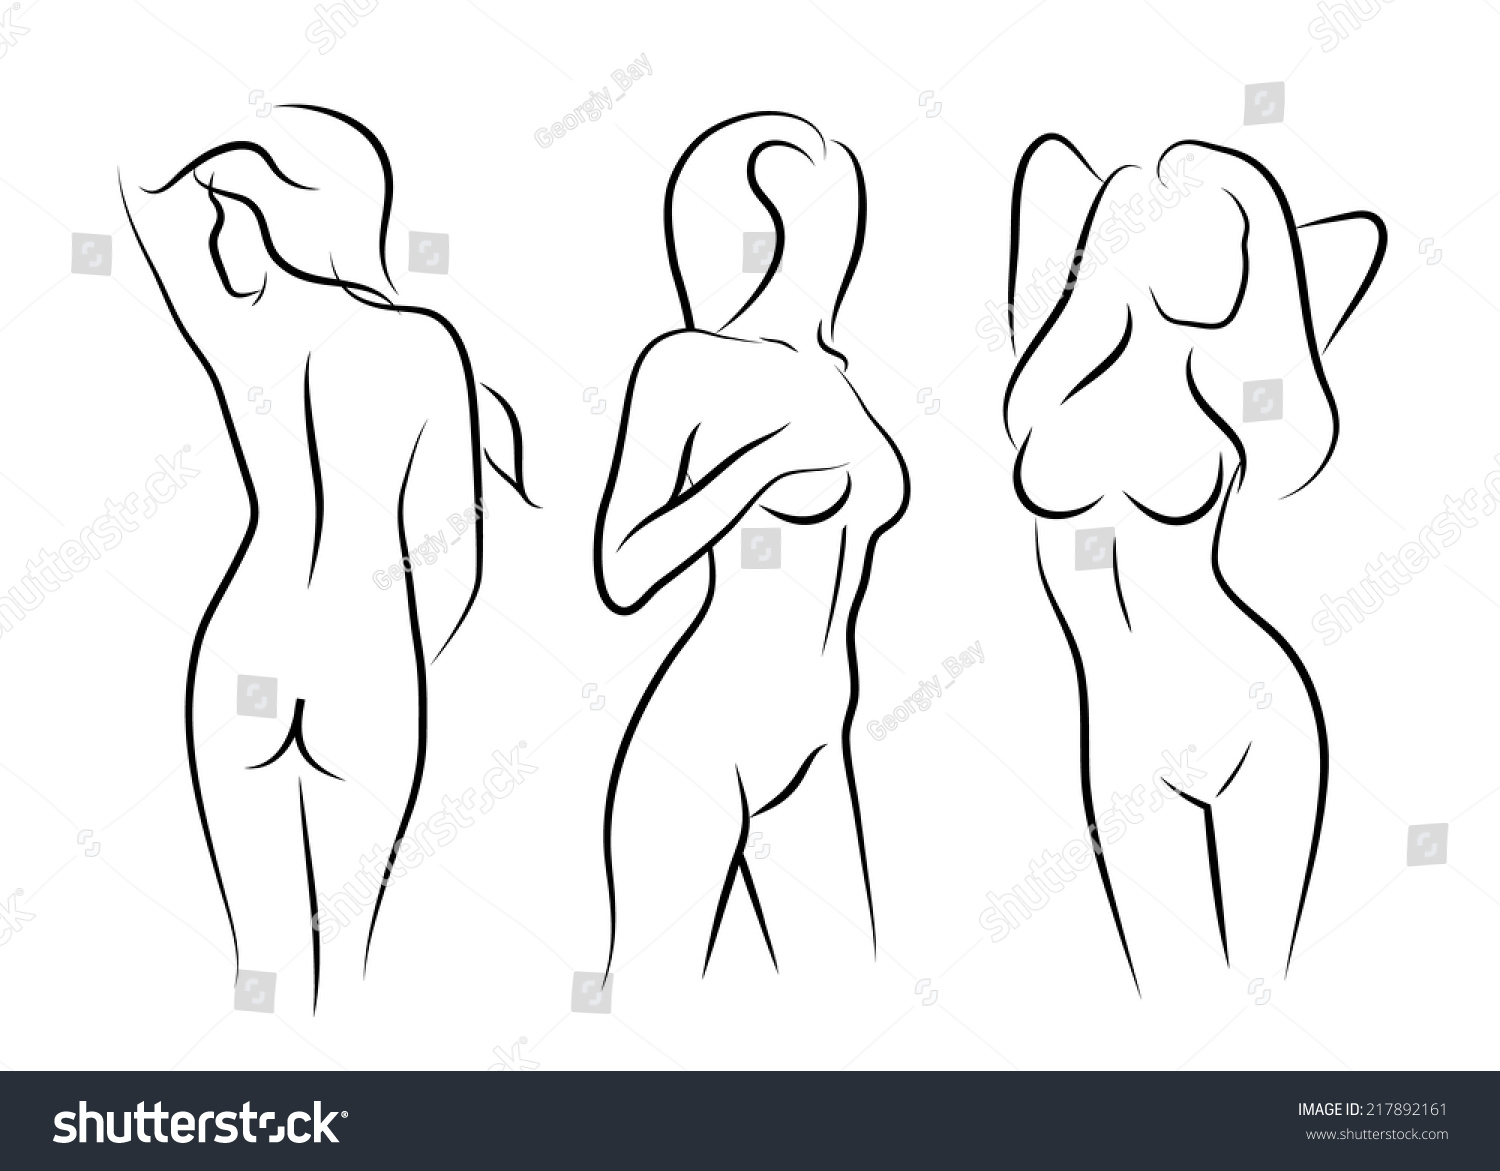 Illustrations Vector Women Naked Art Human Beauty Body Drawing